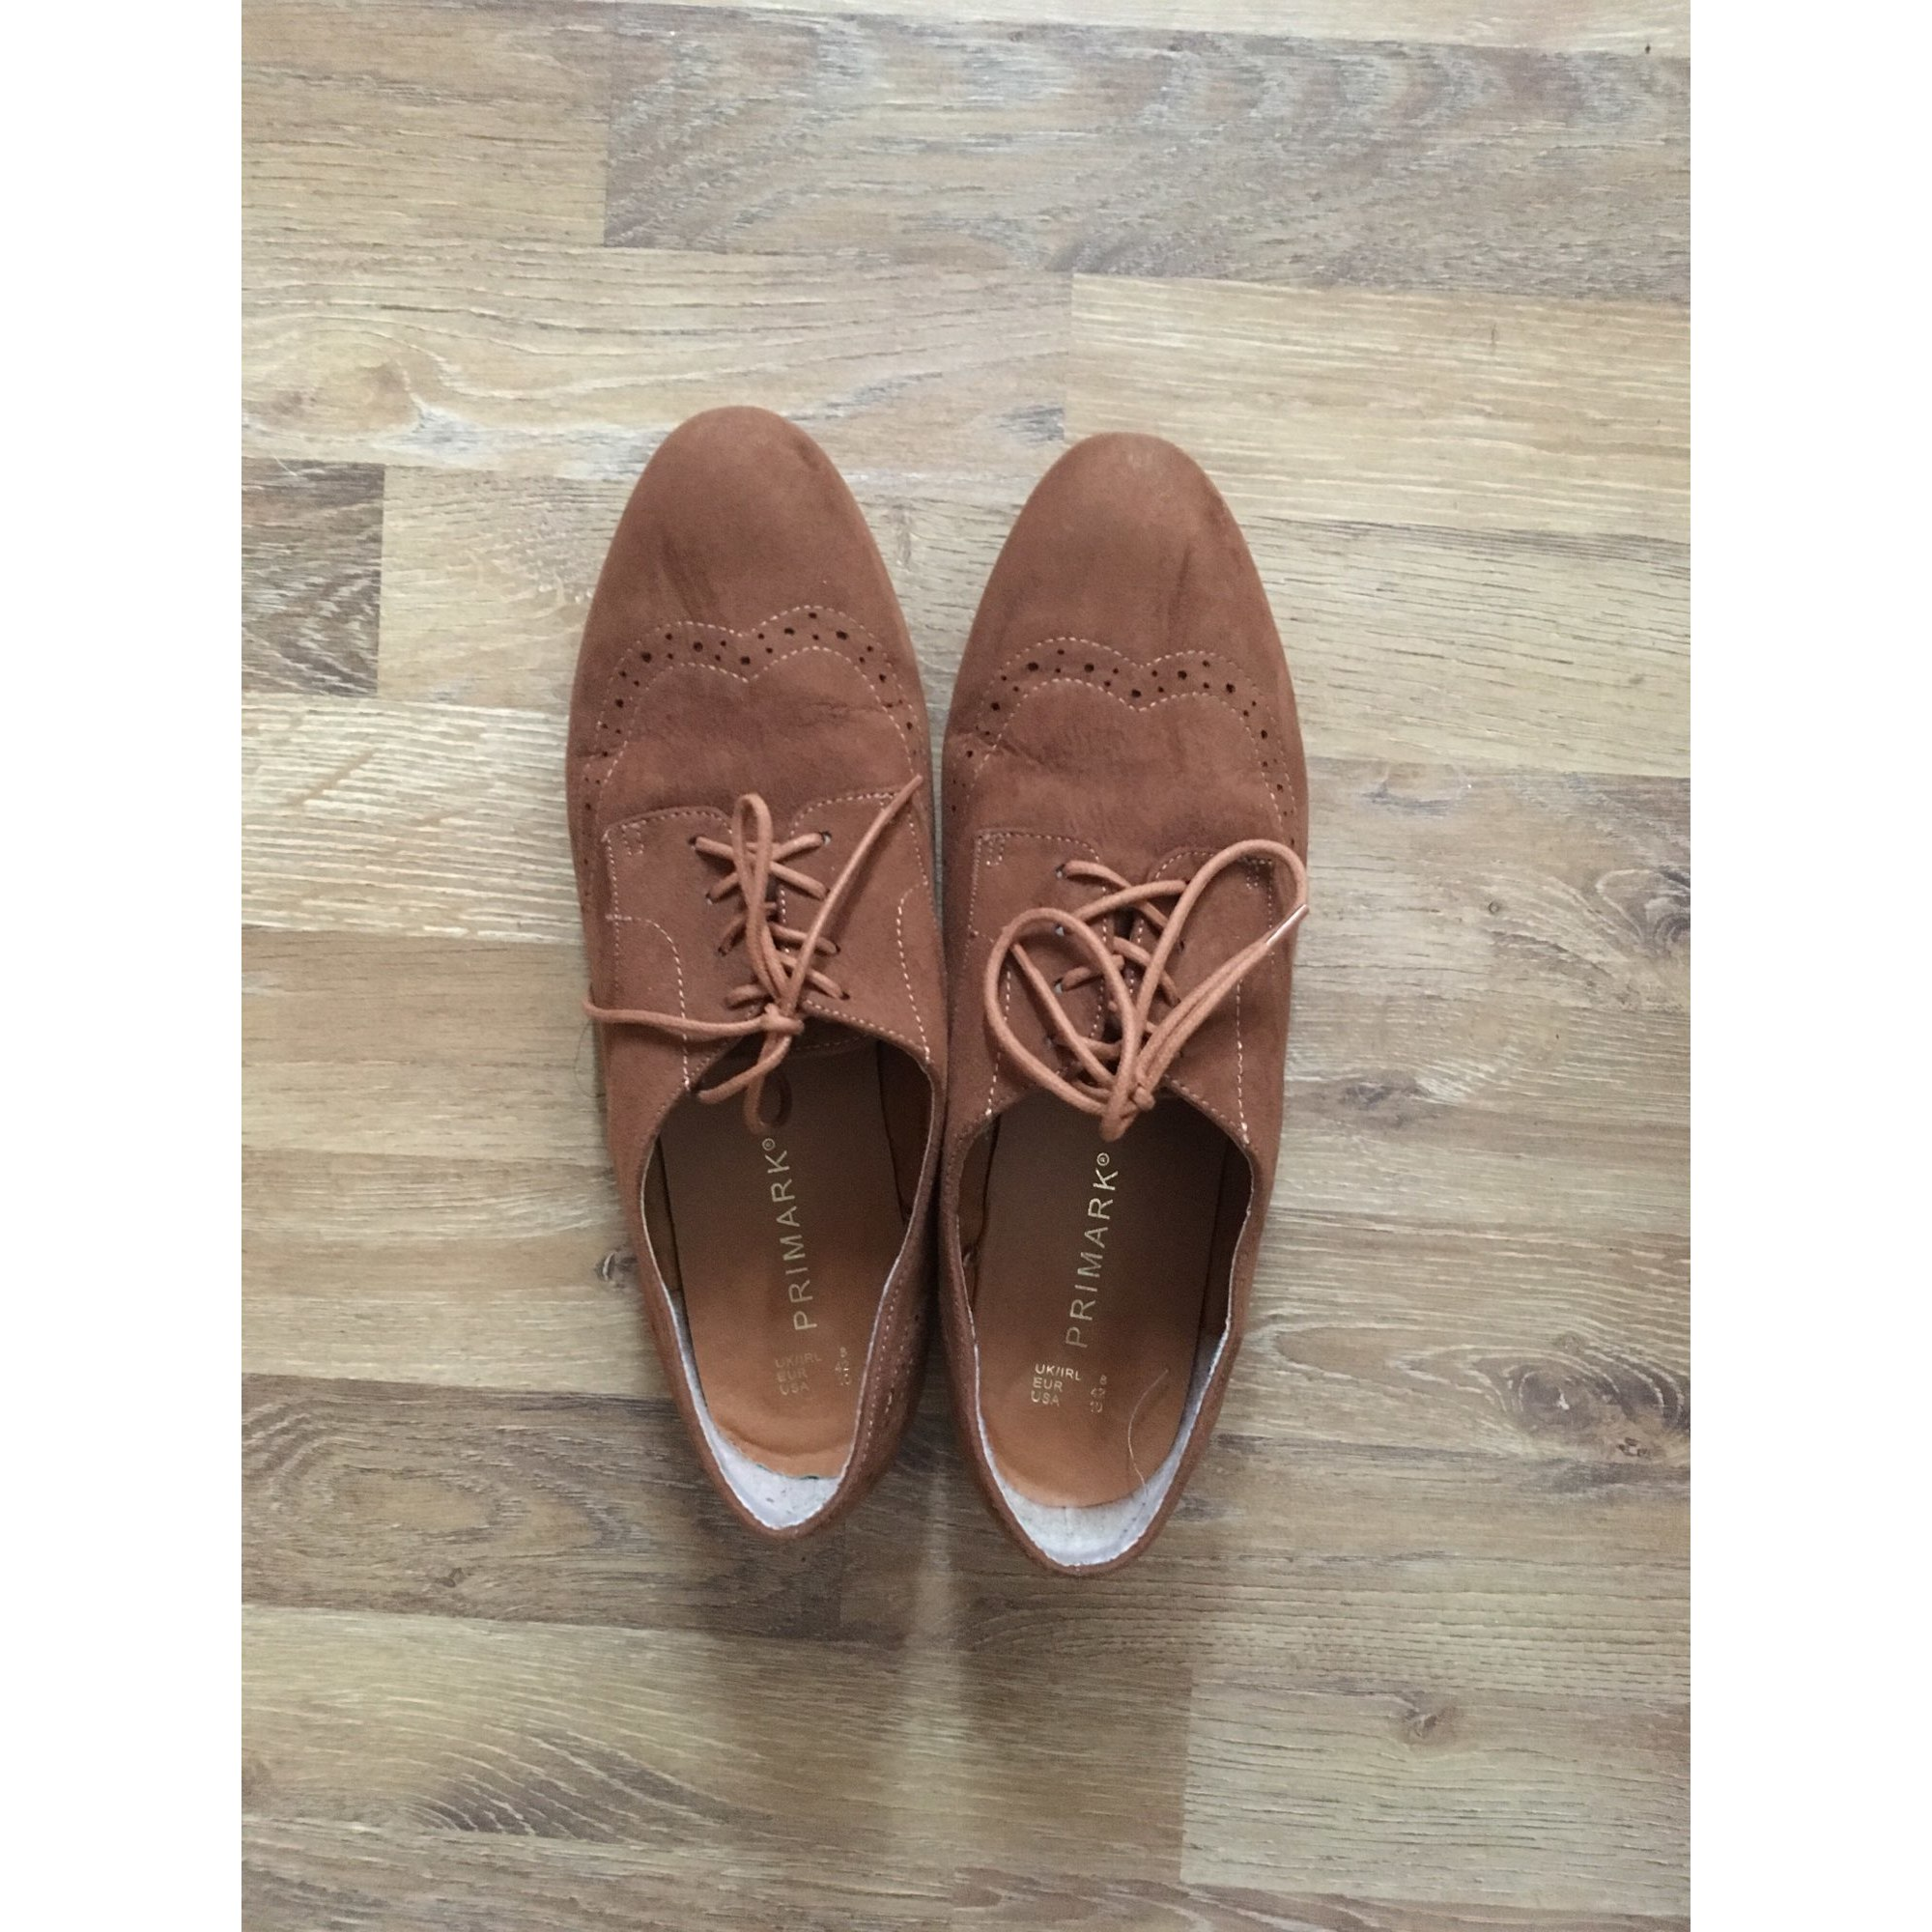 Braderie homme taille 40 Chaussures à lacets